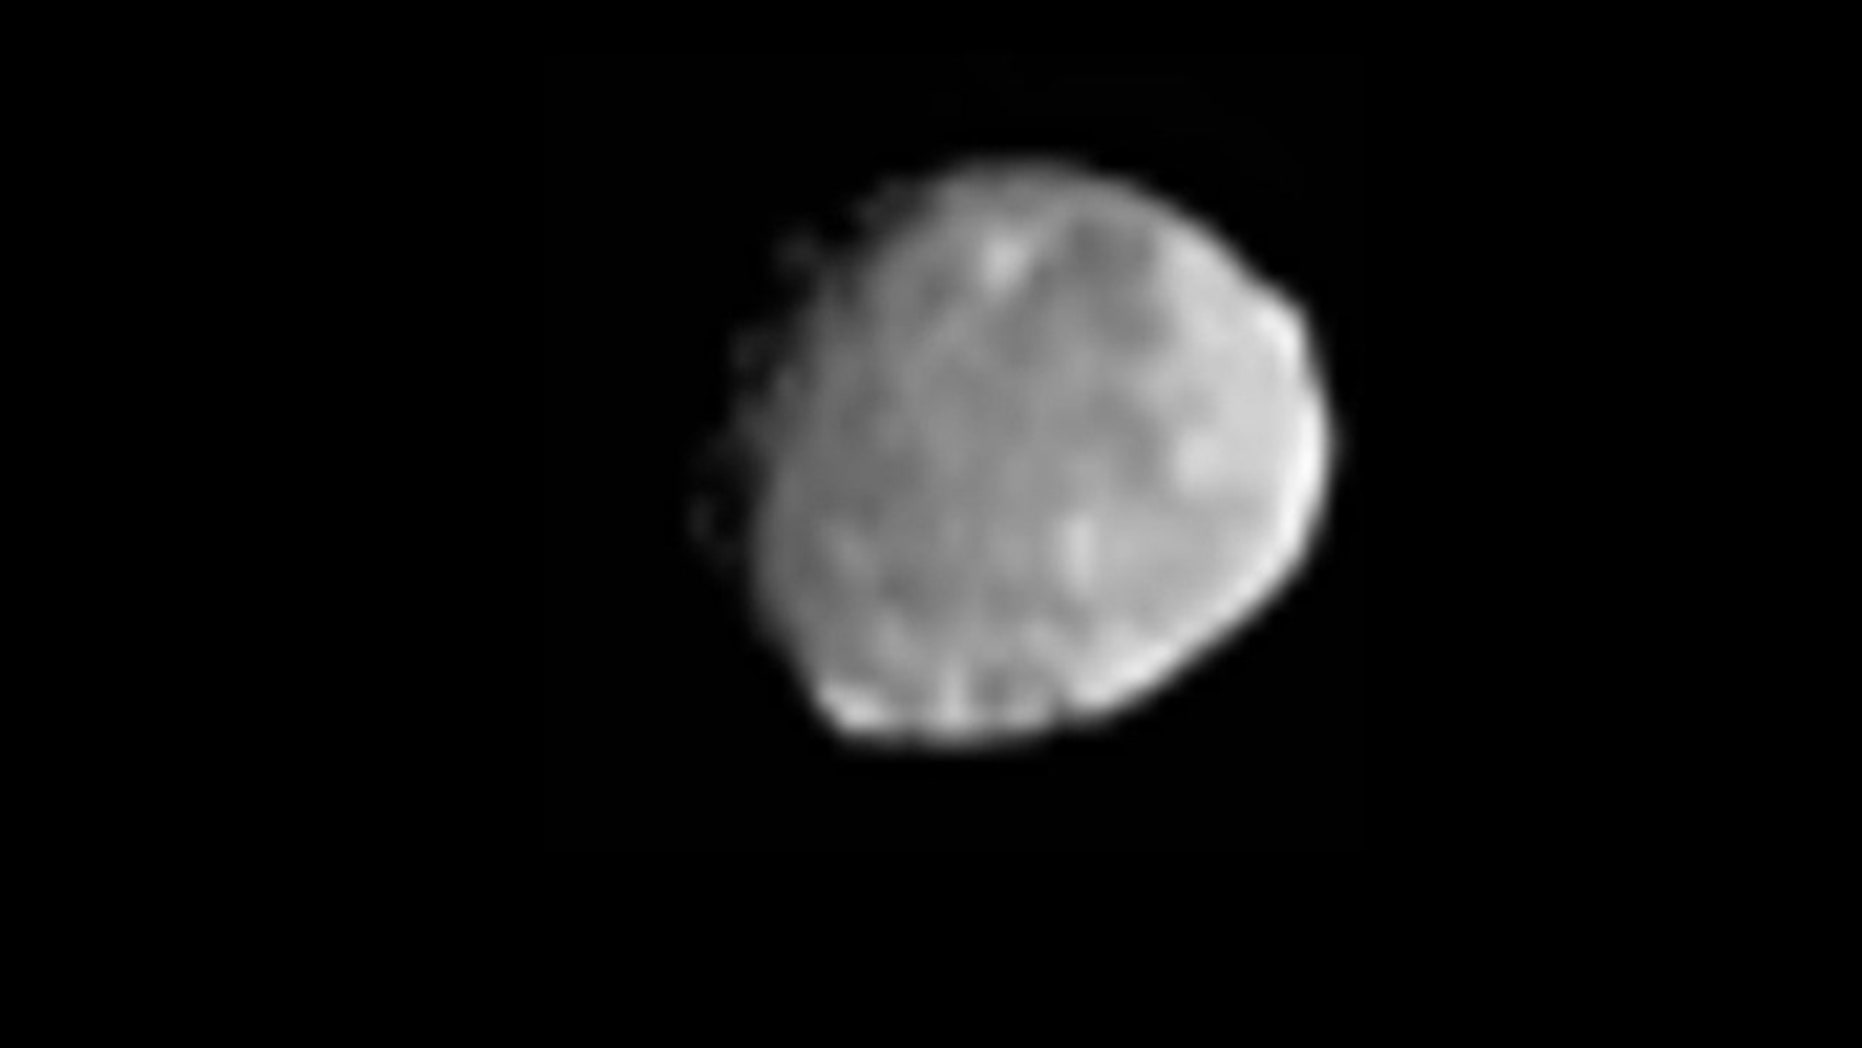 NASA's Dawn spacecraft obtained this image on its approach to the protoplanet Vesta, the second-most massive object in the main asteroid belt. The image was obtained on June 20, 2011.